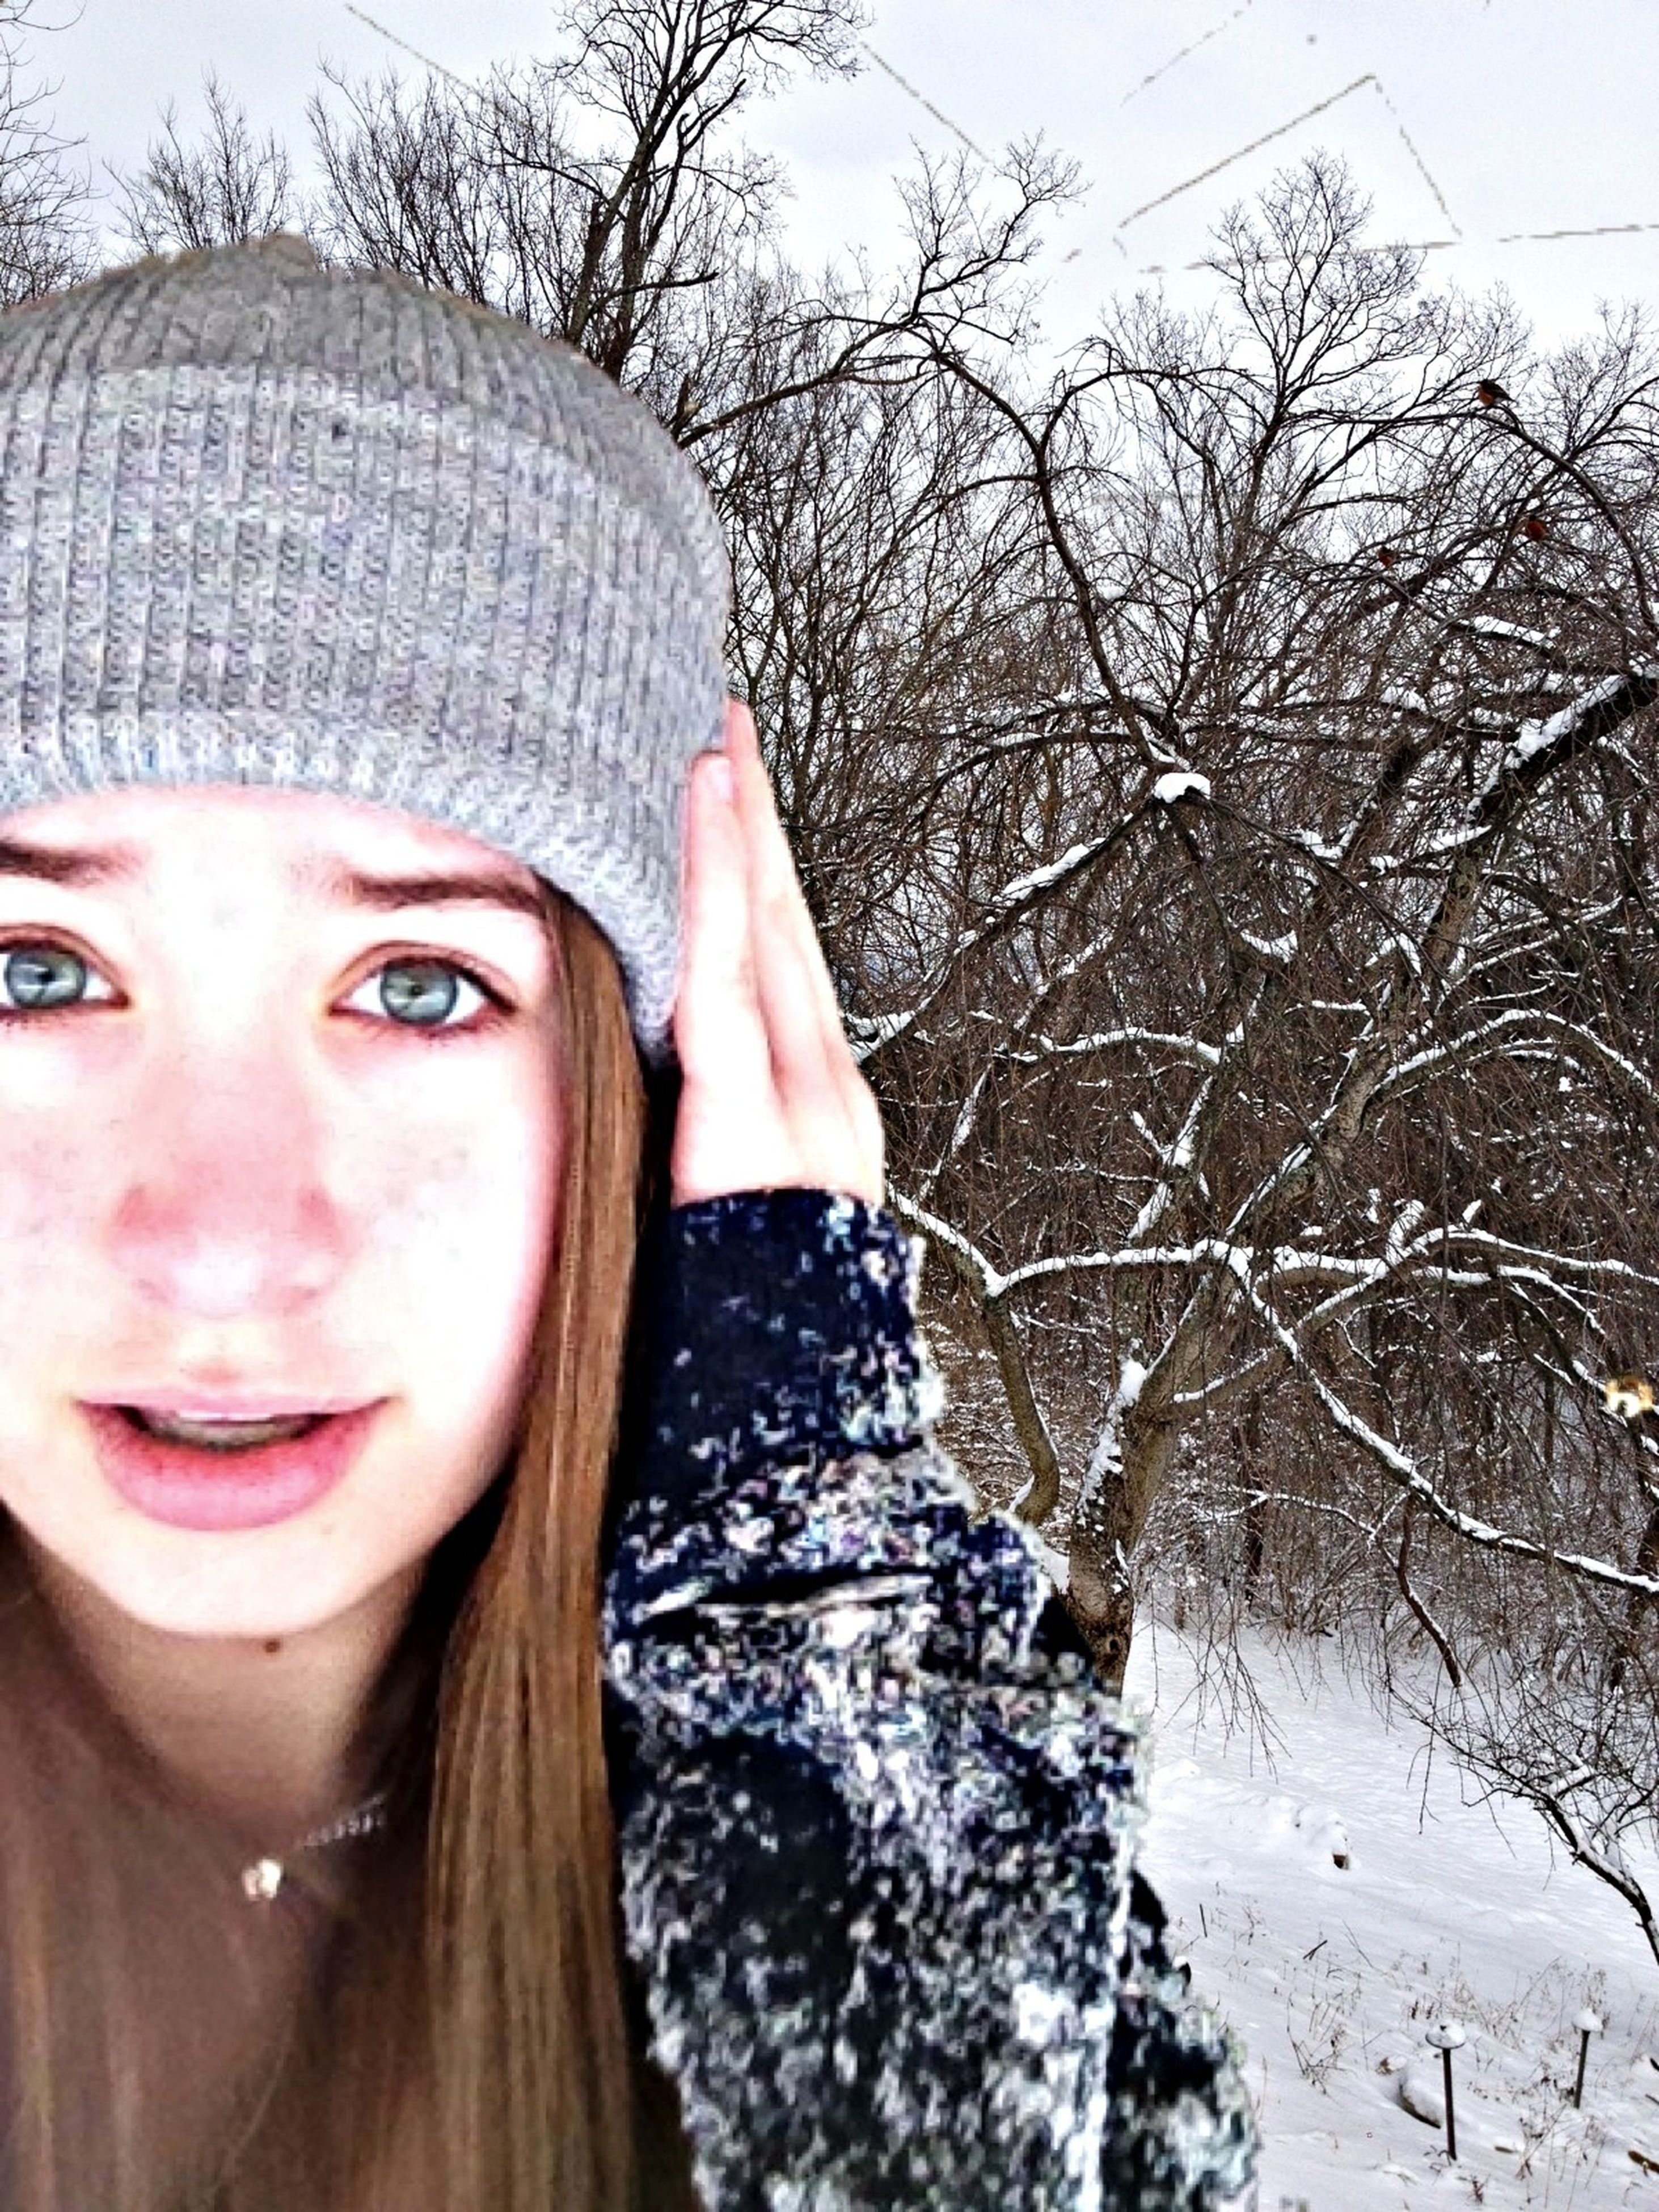 young adult, person, lifestyles, young women, looking at camera, portrait, headshot, leisure activity, front view, smiling, bare tree, tree, human face, long hair, close-up, day, winter